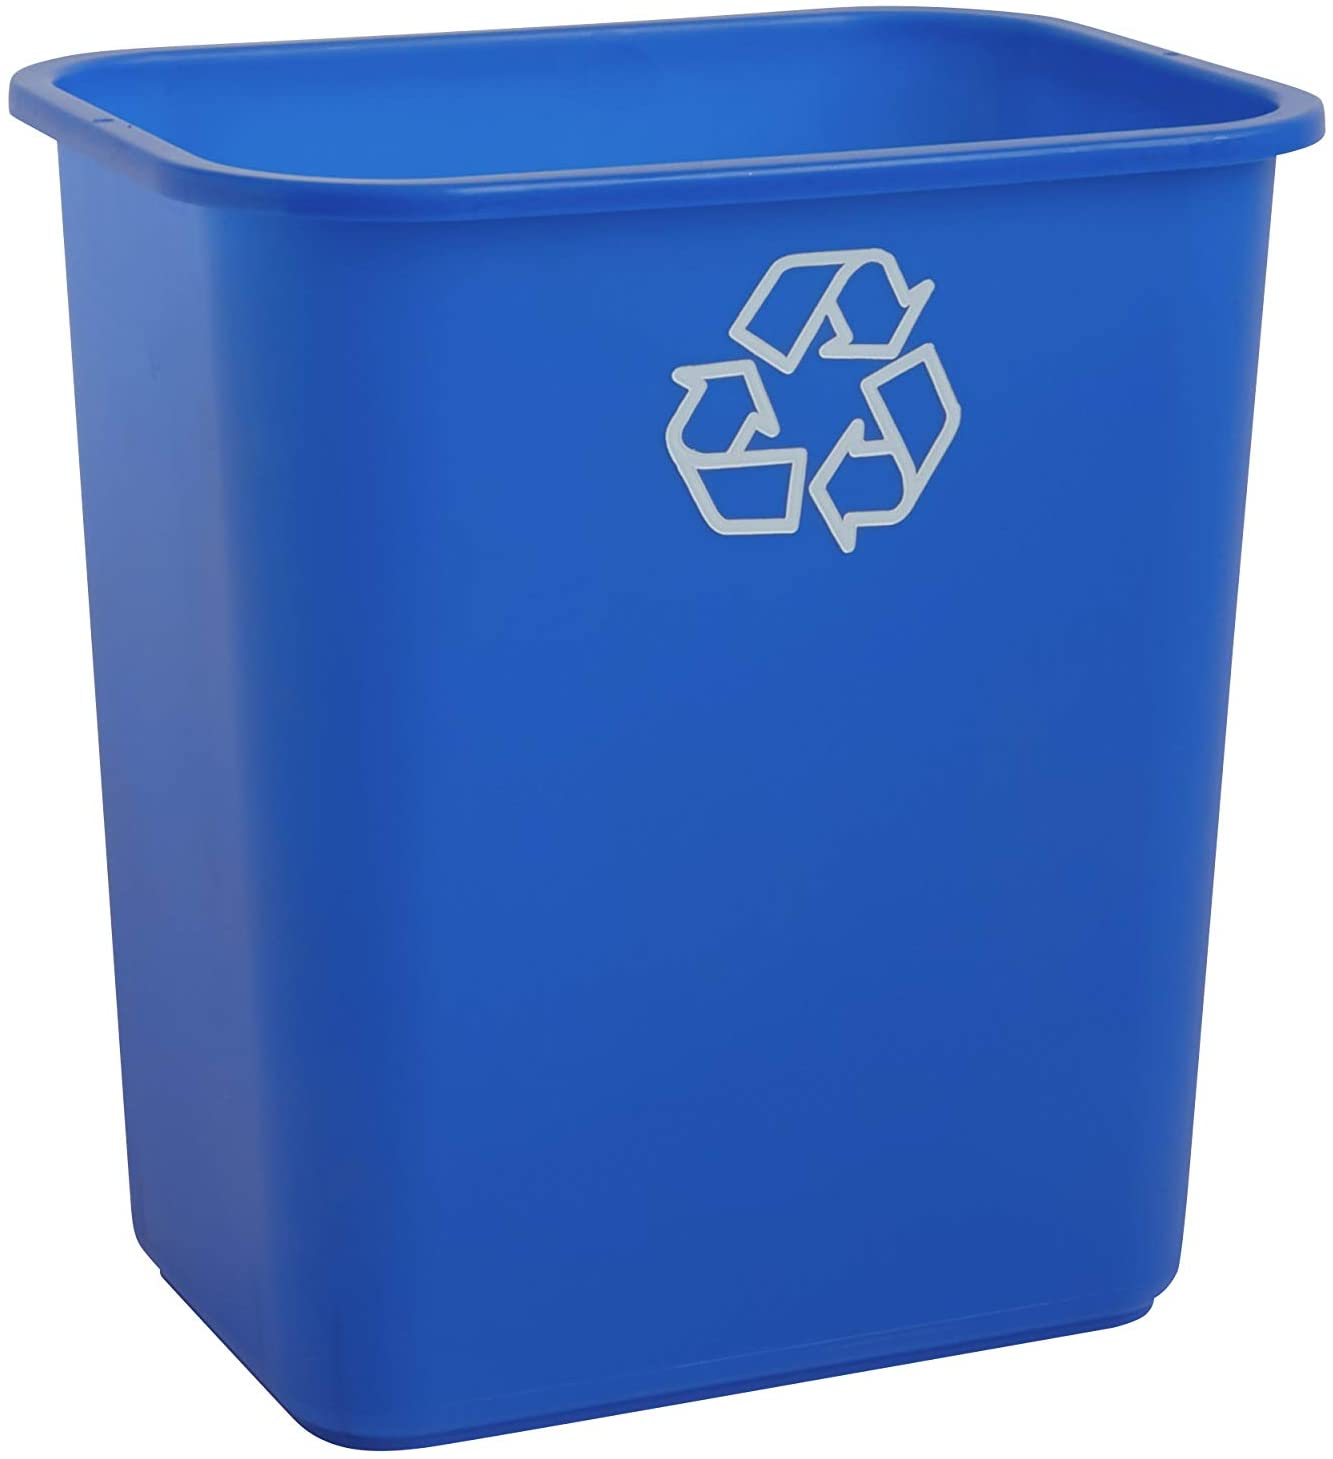 United Solutions 7 Gallon/28 Quart Efficient Recycle Wastebasket   Fits Under Desk   Small, Narrow Spaces in Commercial, Kitchen, Home Office, Dorm   Easy to Clean, 1 Pack, Blue: Home & Kitchen